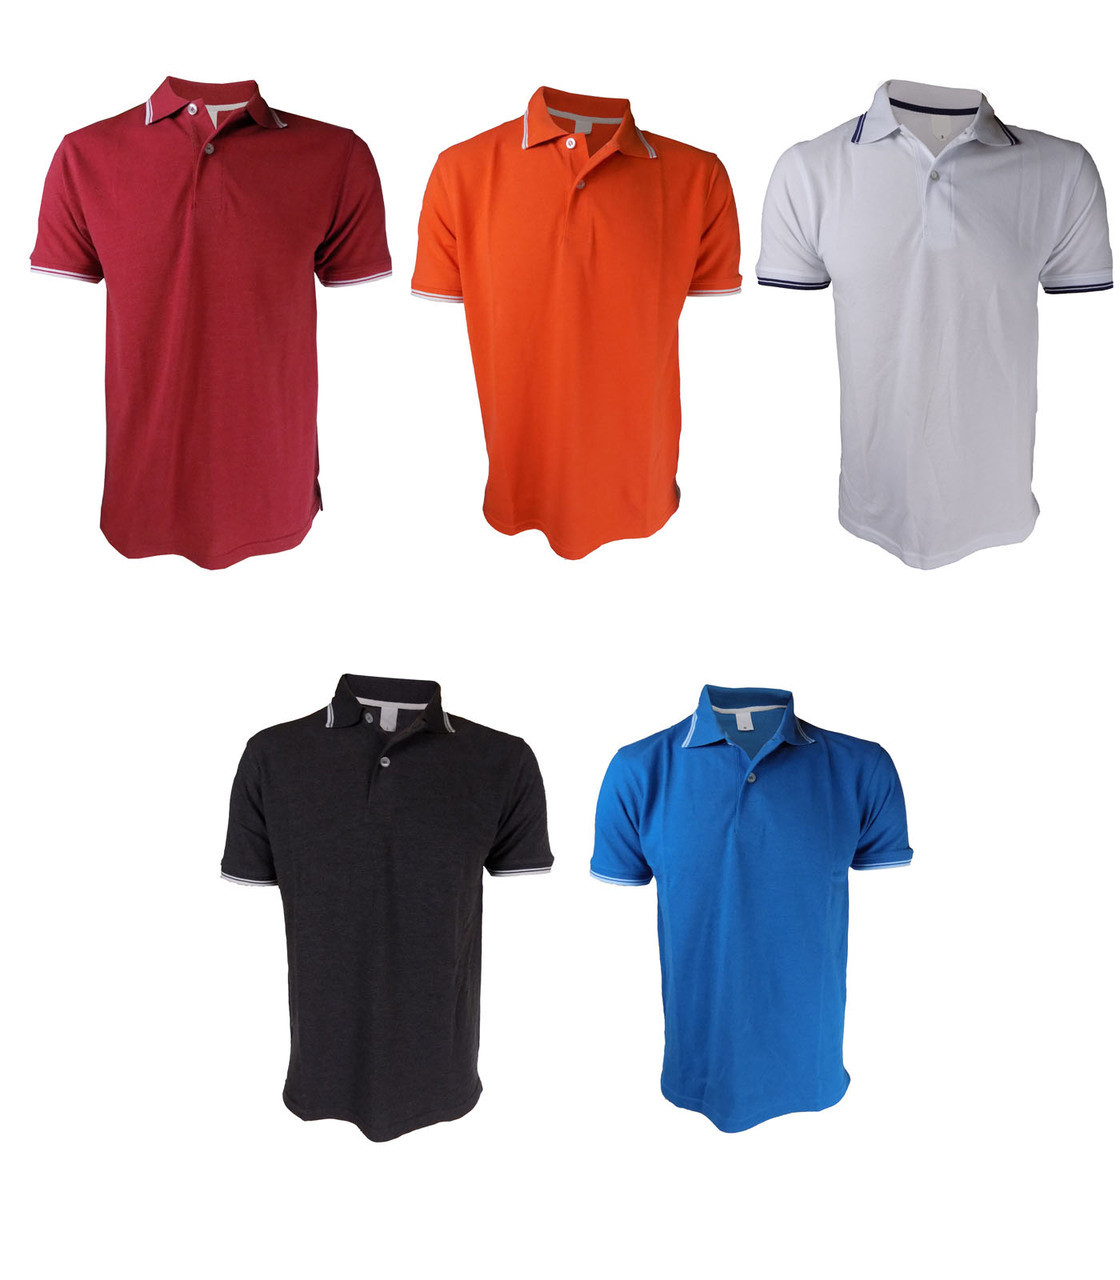 514ce278 Wholesale Mens High Collar Shirts - DREAMWORKS